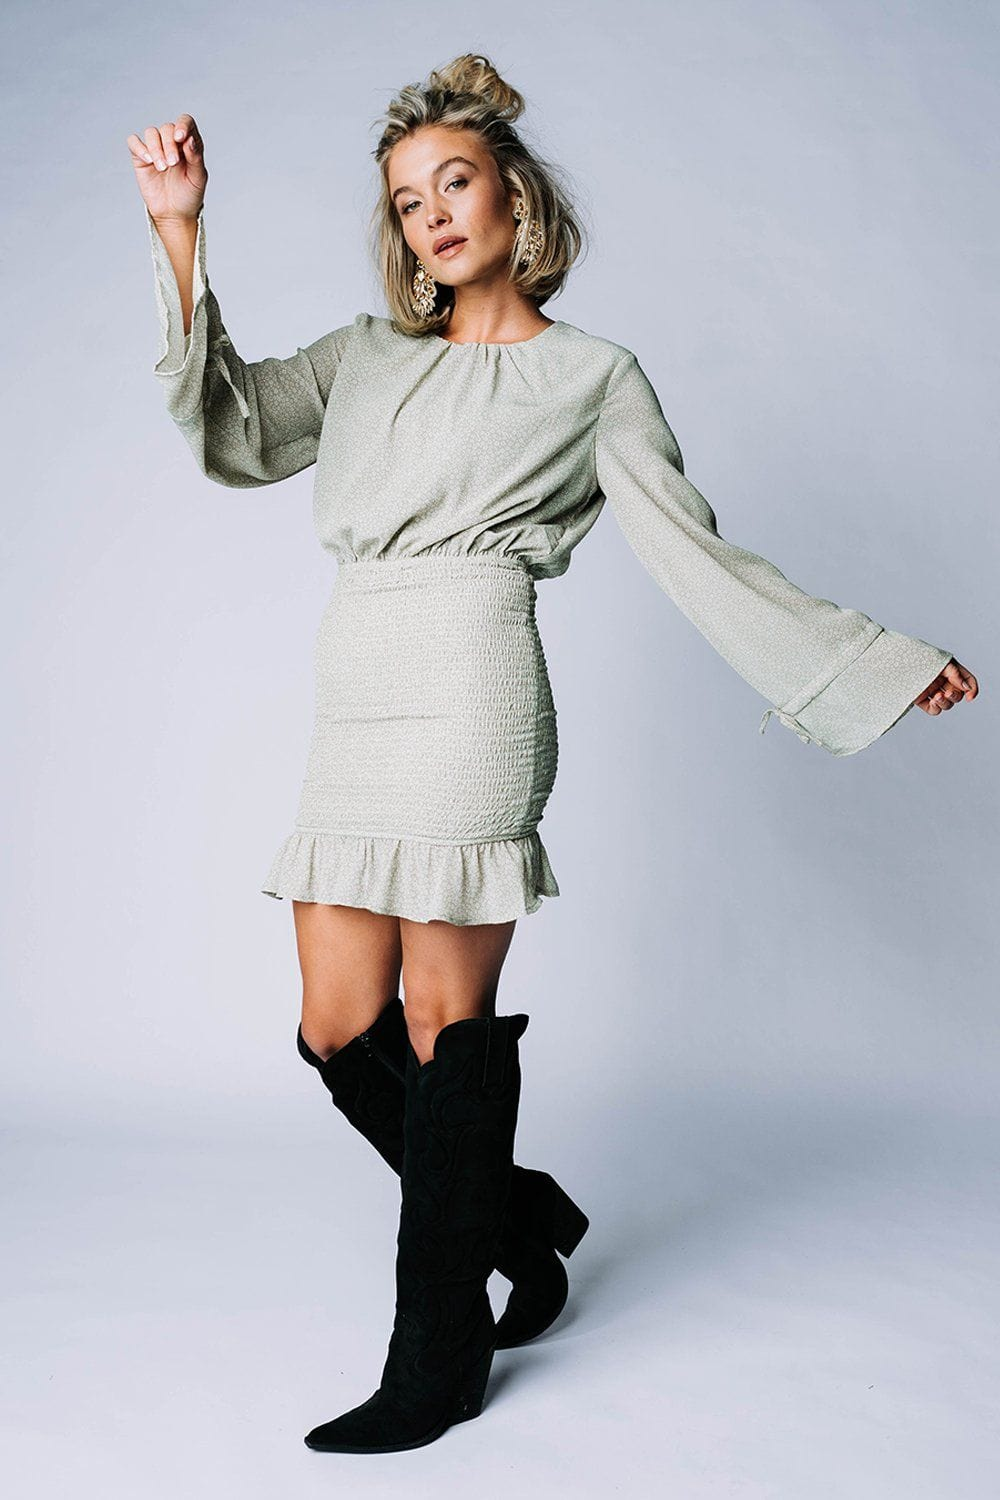 Can't Buy Me Love Mini Dress in Sage, cladandcloth, n/a.